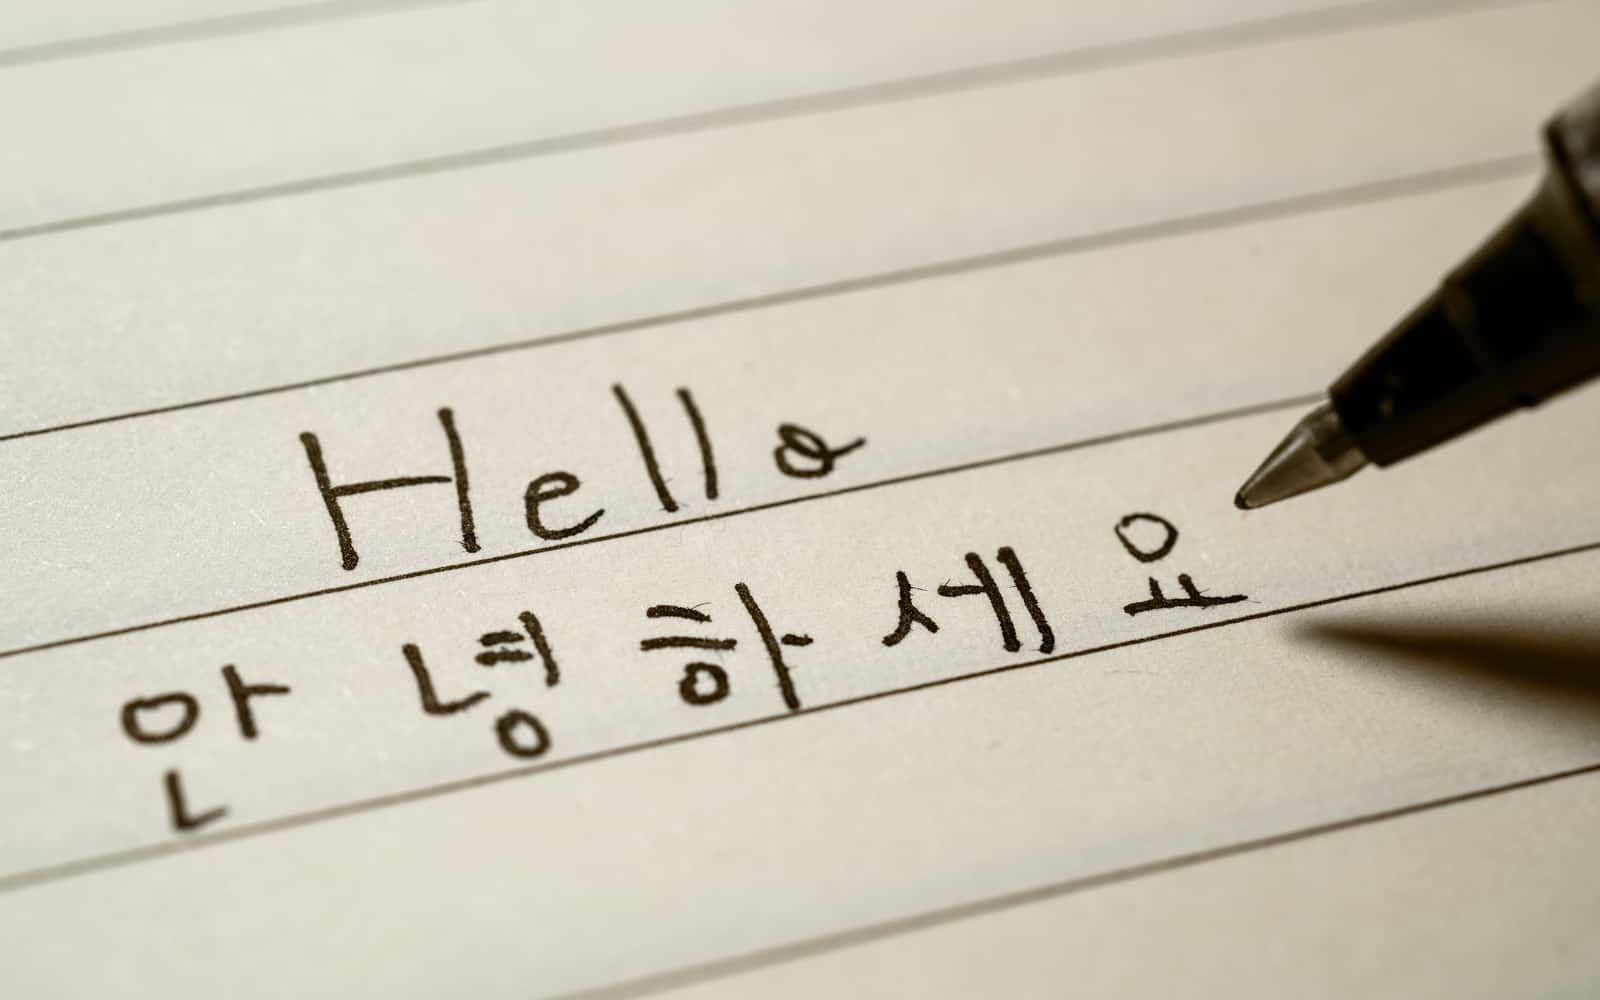 Hand written Hello in Korean annyeonghaseyo